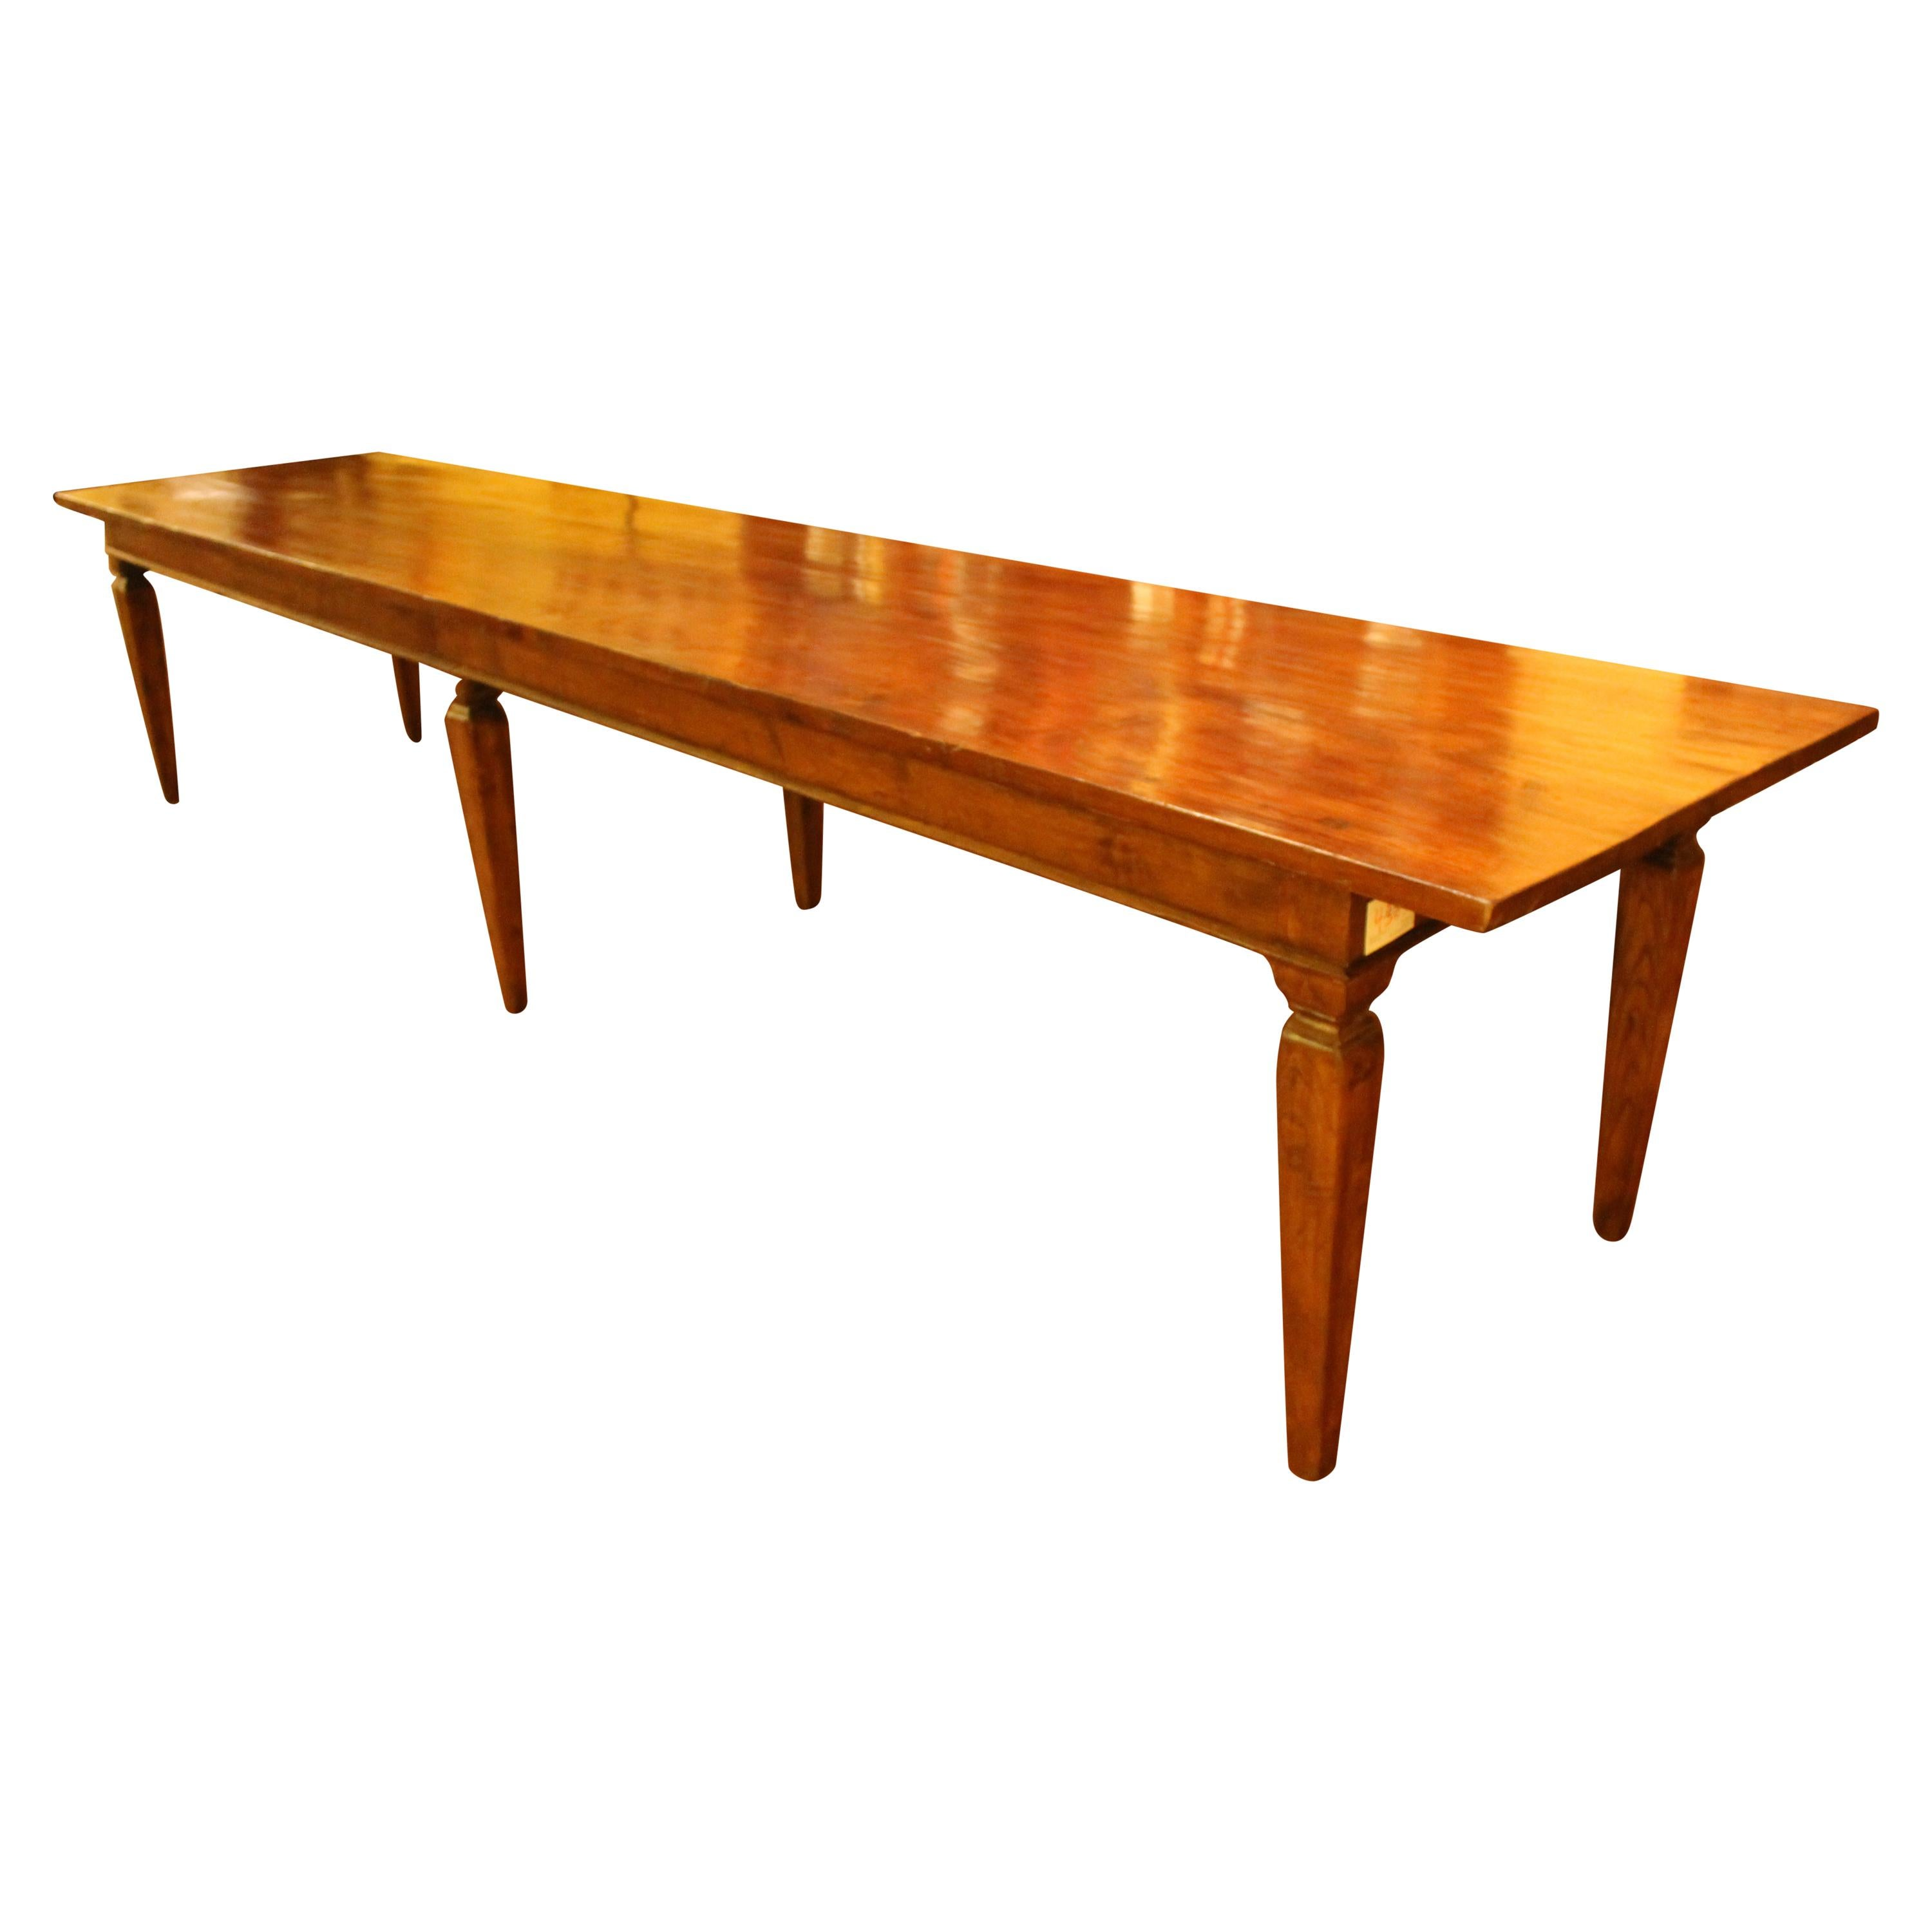 Dutch 19th Century Farm Table